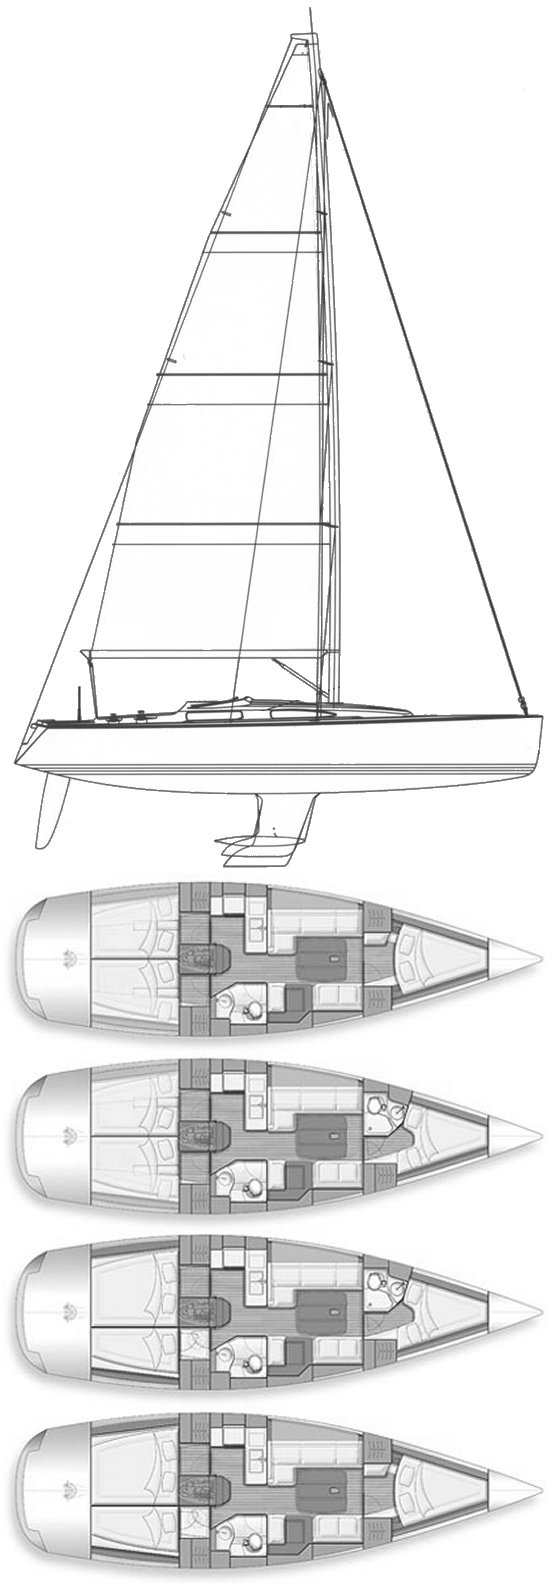 salona 42 sailboat specifications and details on sailboatdata com